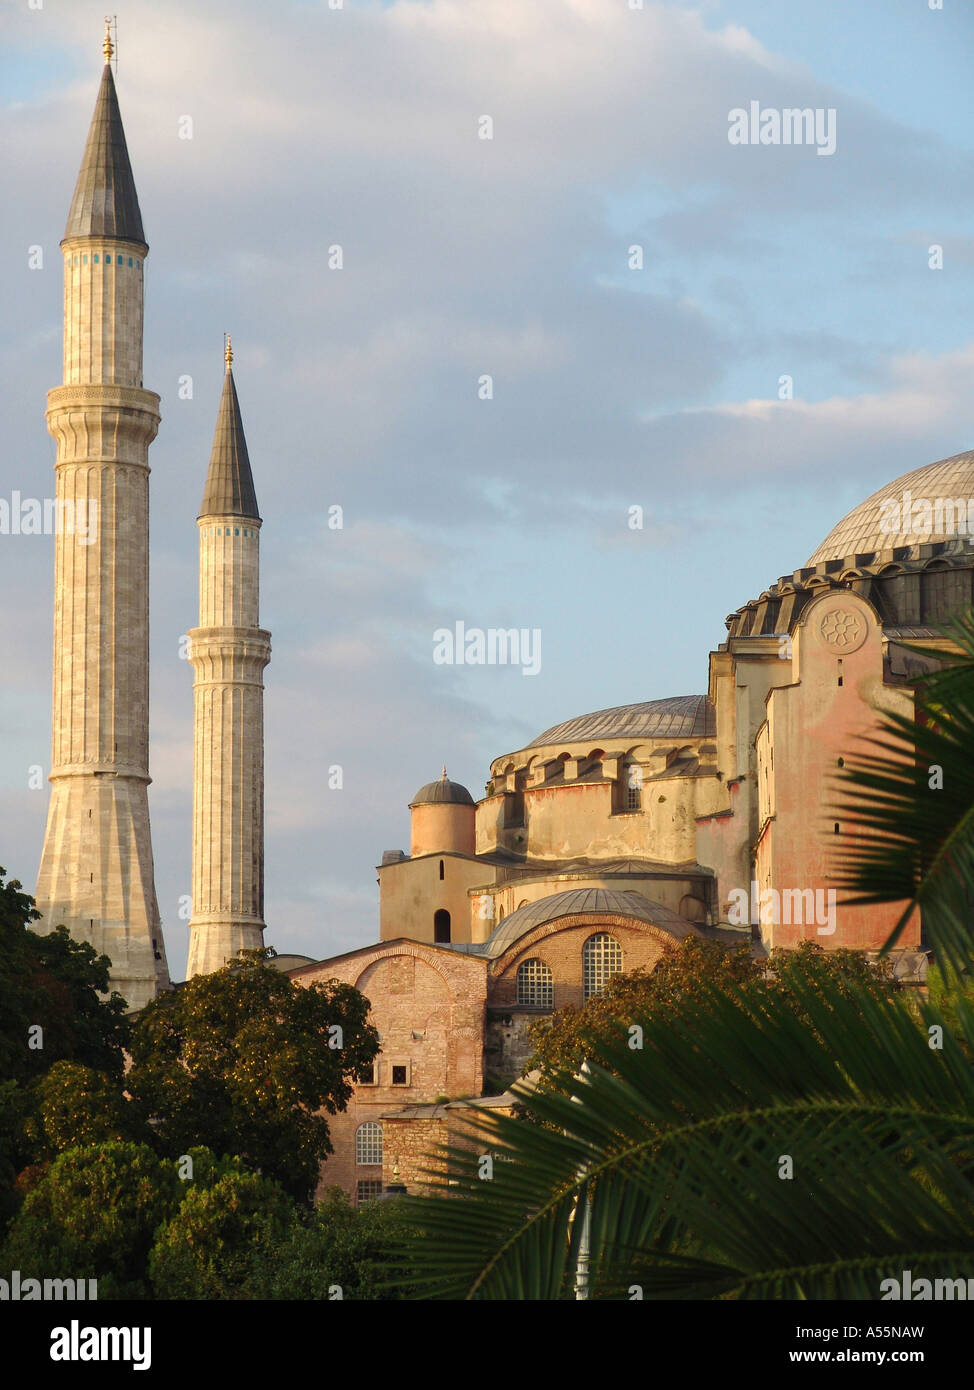 Painet is1563 turkey haghia sophia museum byzantine church dedicated 537 ad by emperor justinian converted mosque Stock Photo